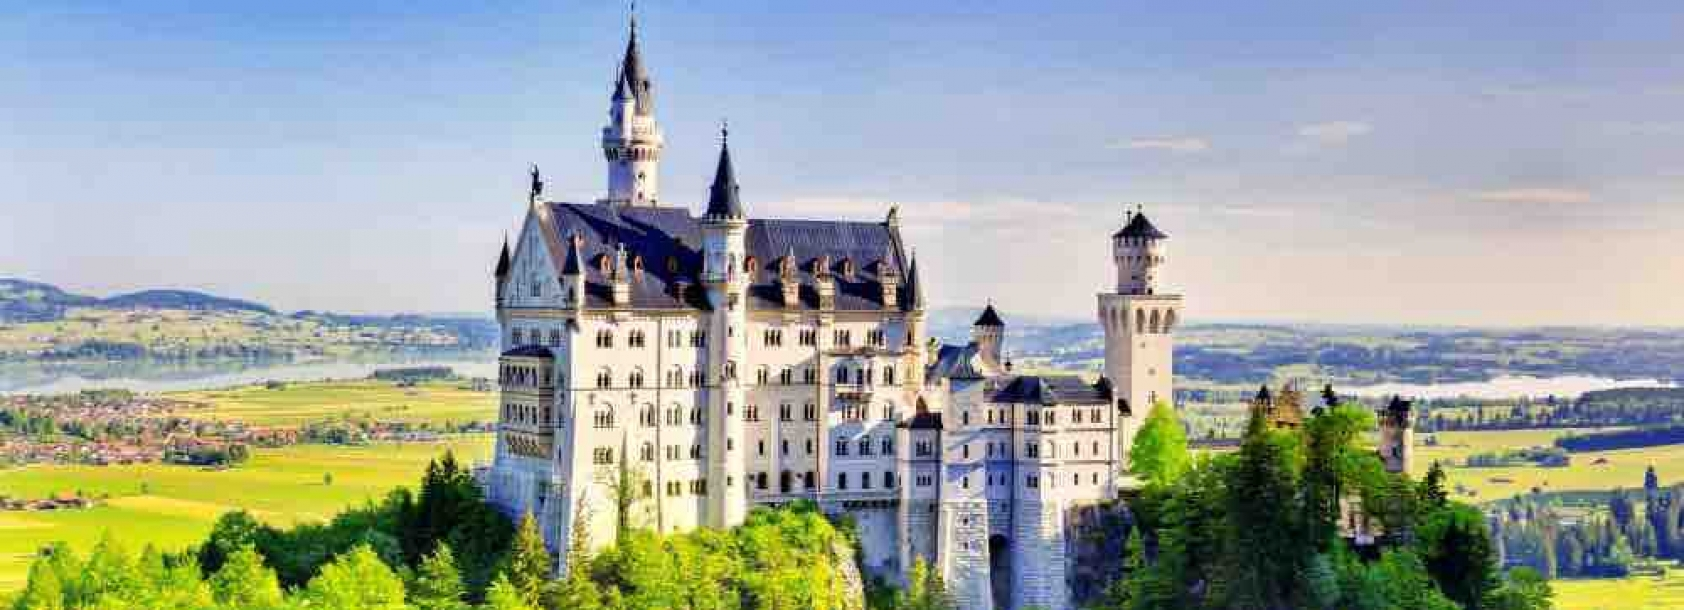 Germany Travel Guide Easy Planet Travel